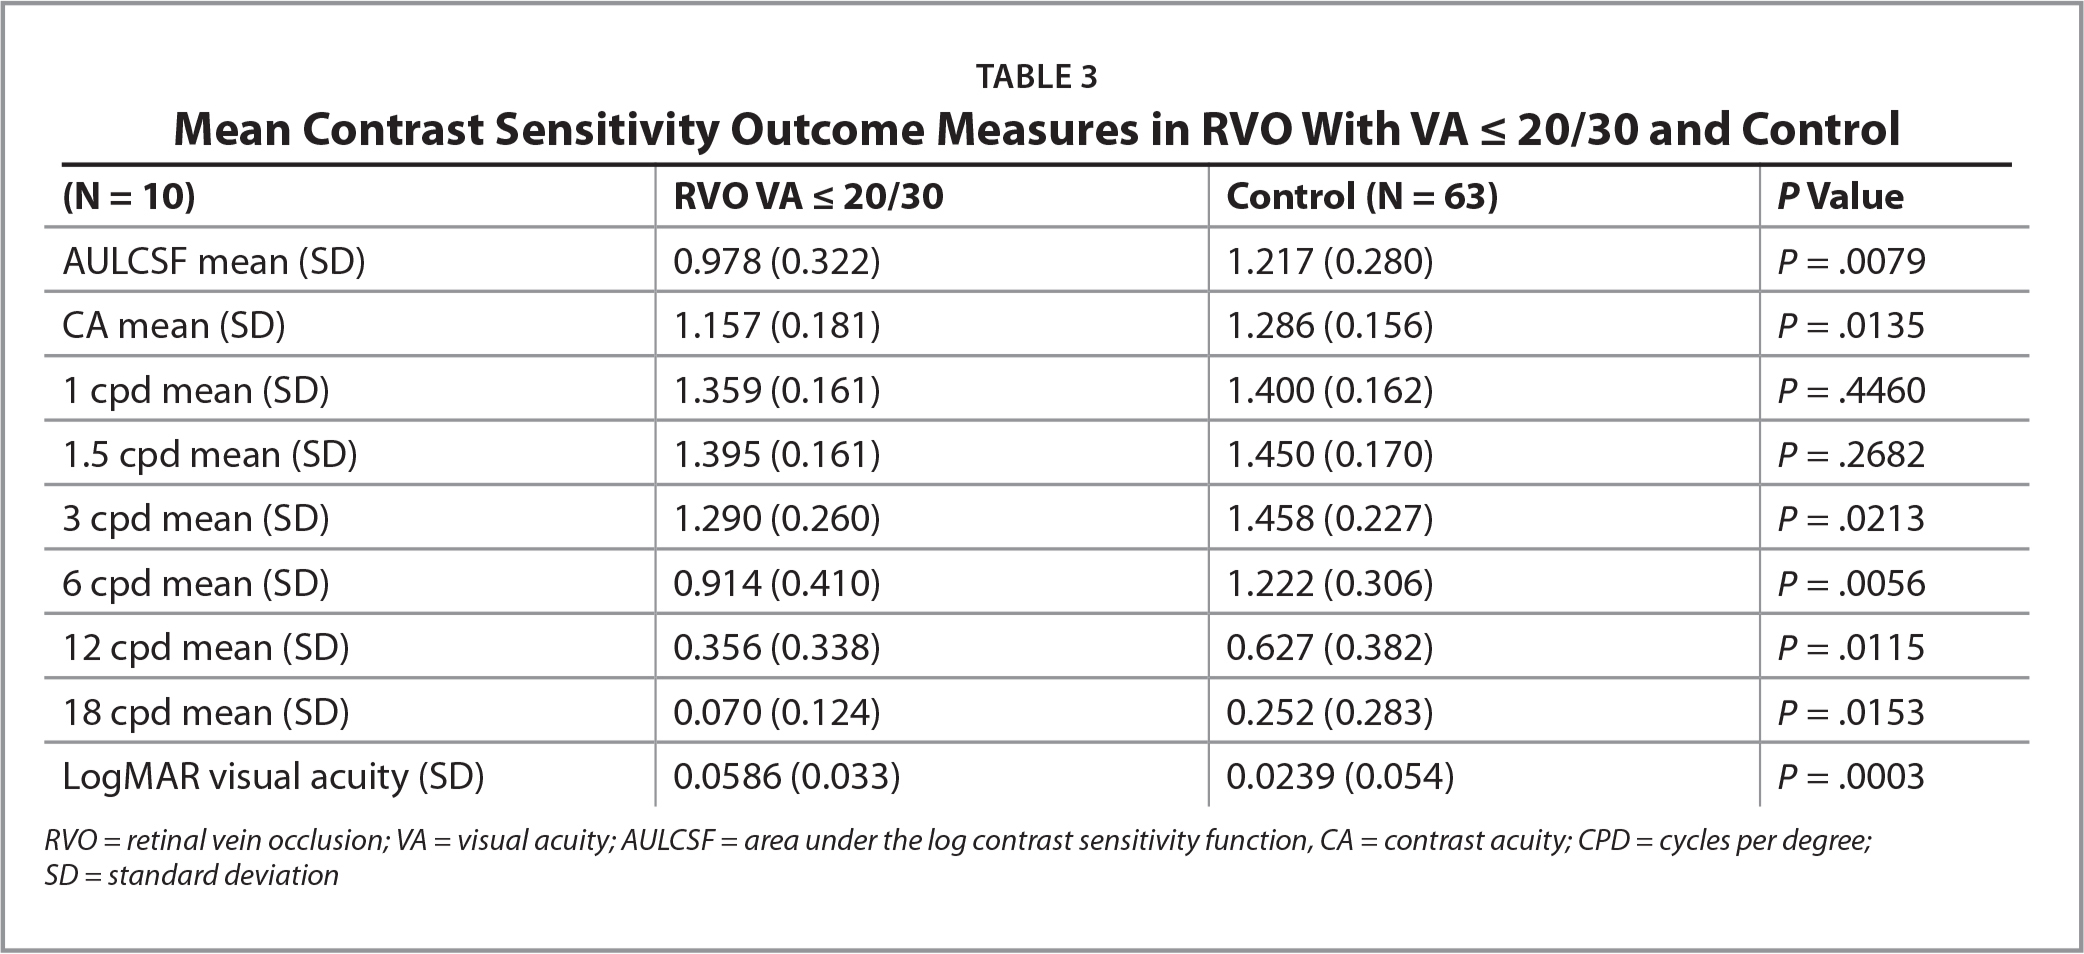 Mean Contrast Sensitivity Outcome Measures in RVO With VA ≤ 20/30 and Control